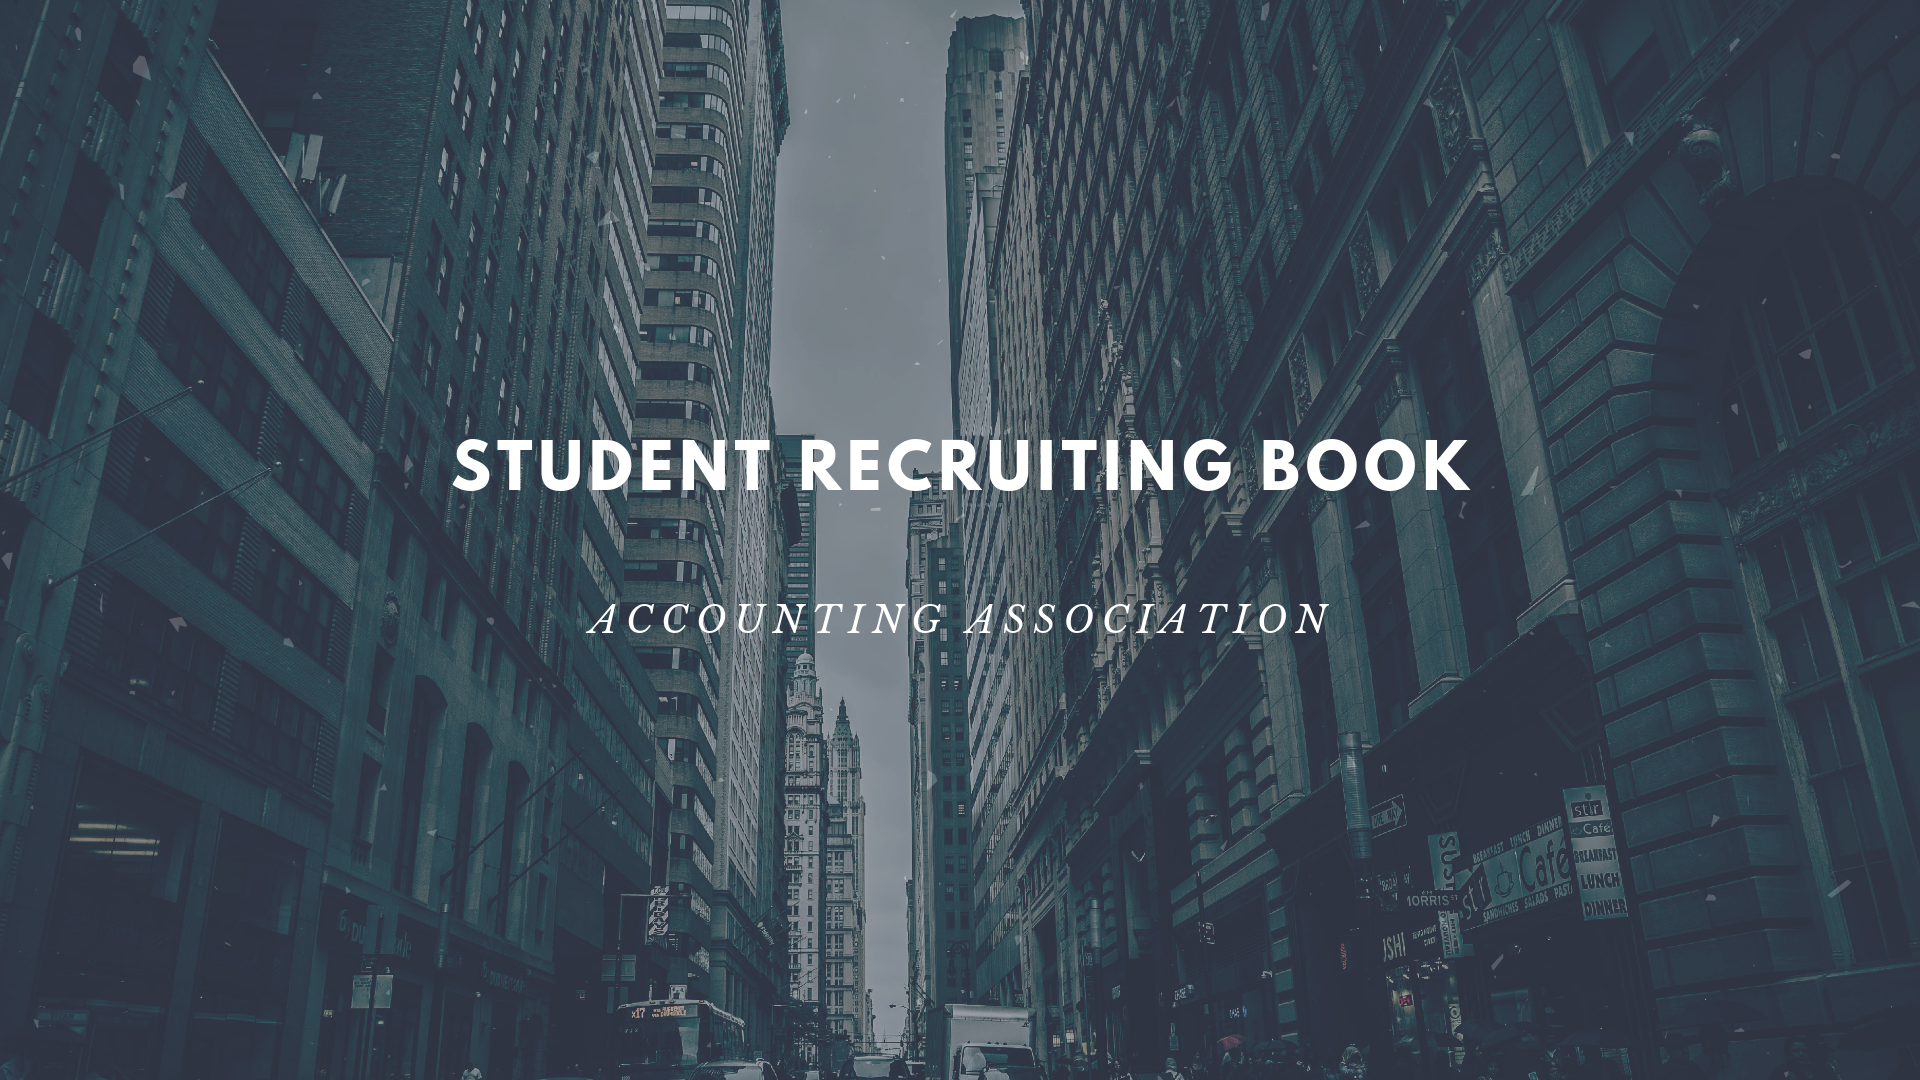 STUDENT RECRUITING BOOK (1).png